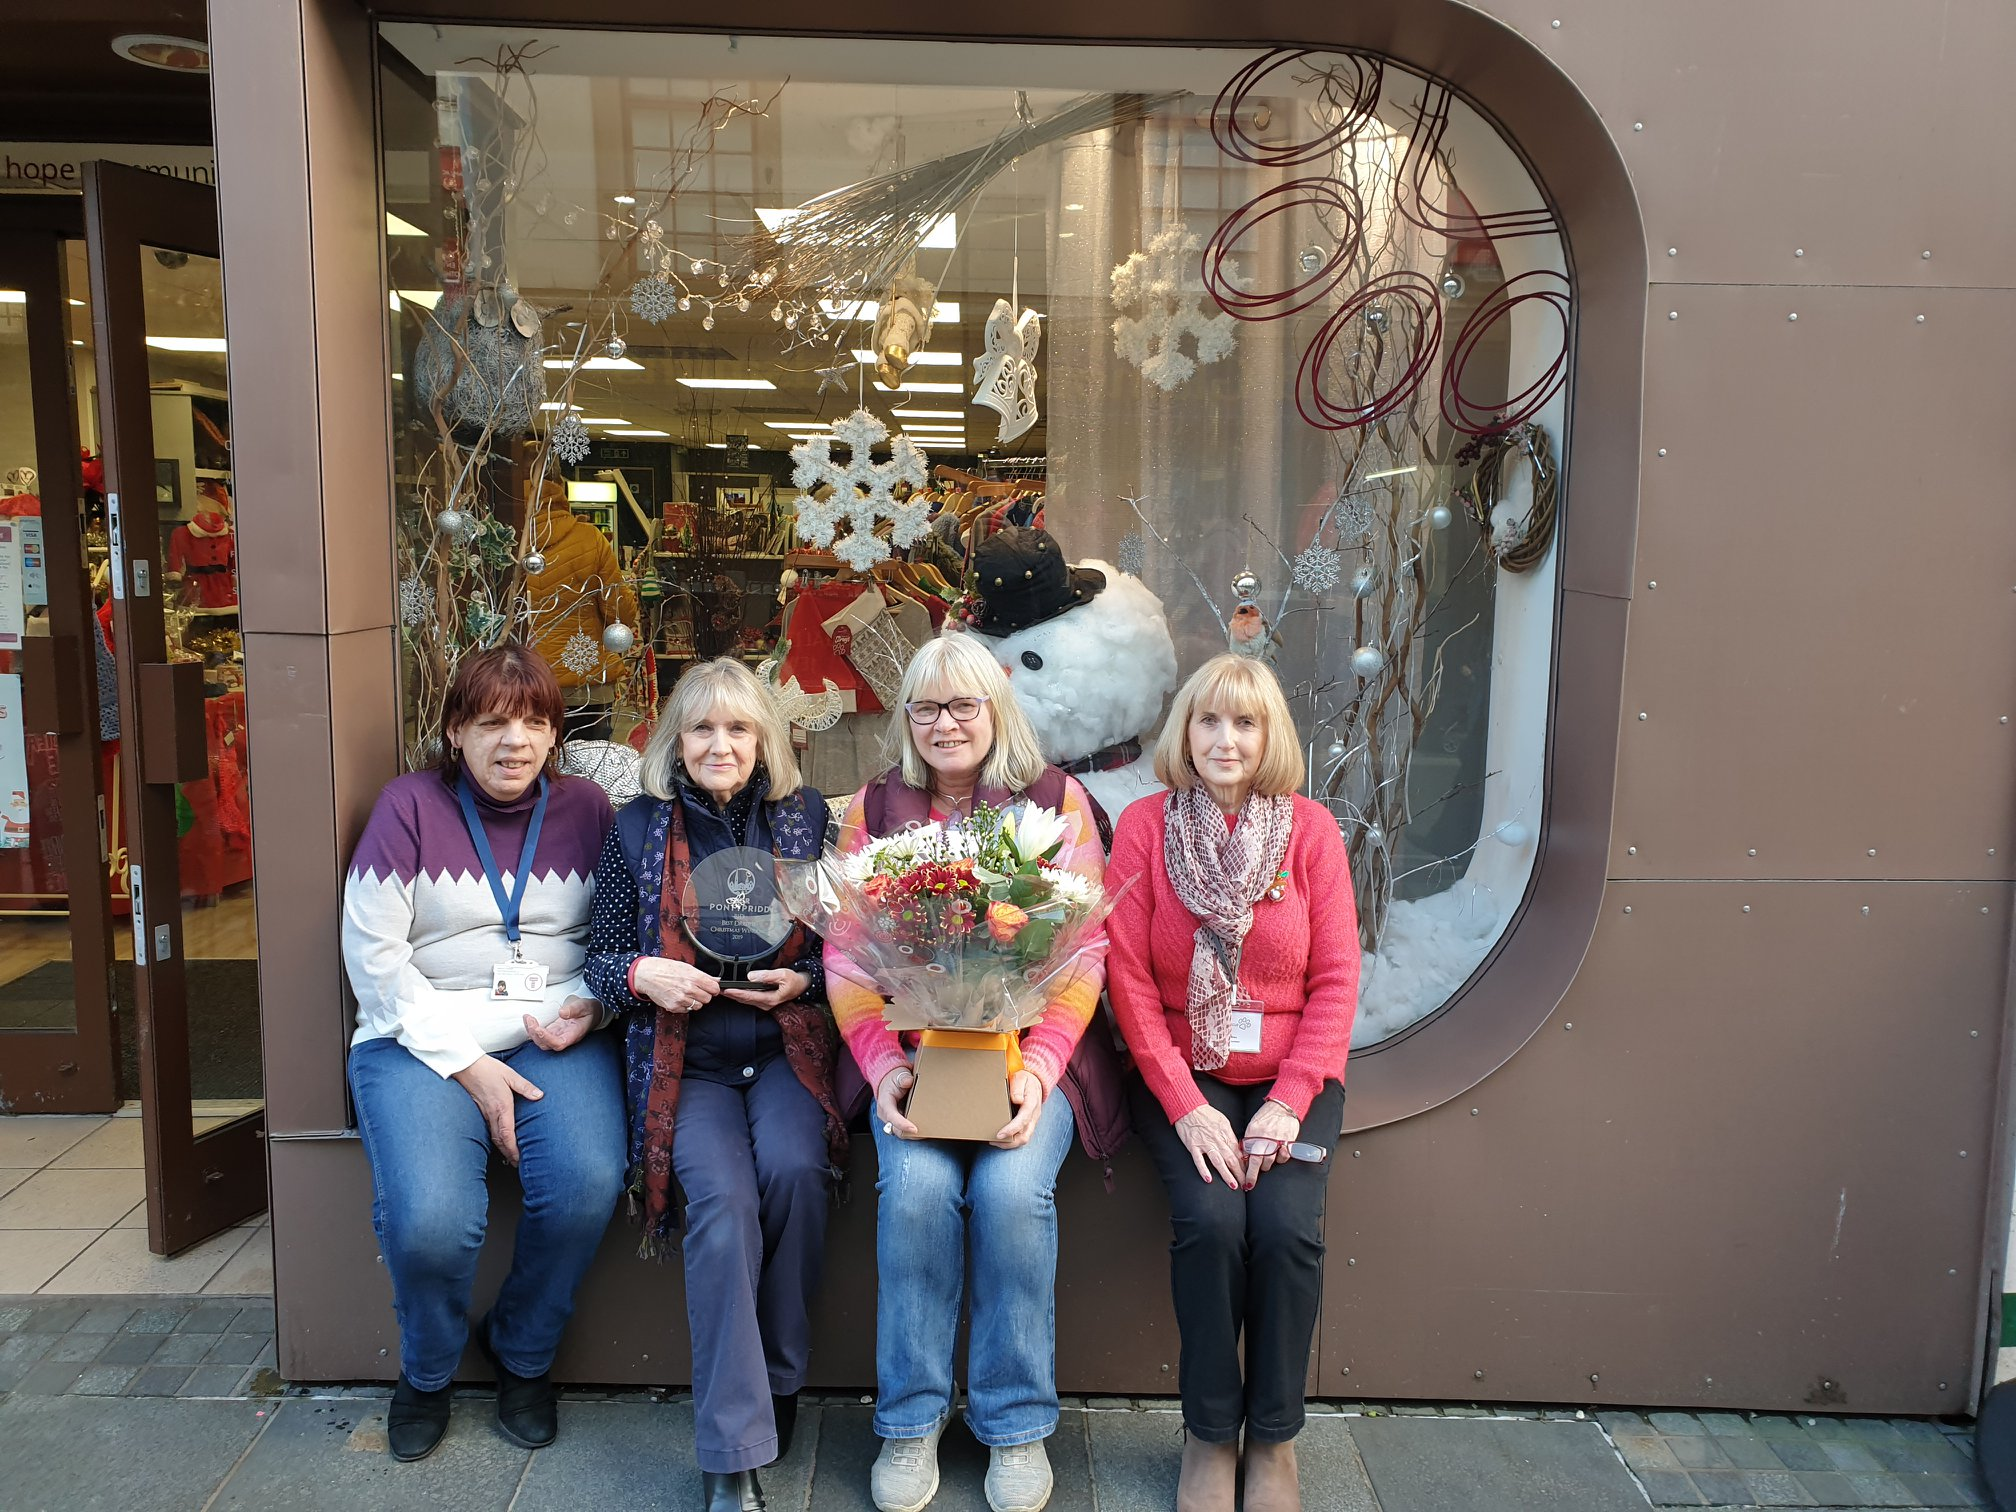 Hope Rescue charity shop staff sit in front of a shop window filled with Christmas decorations